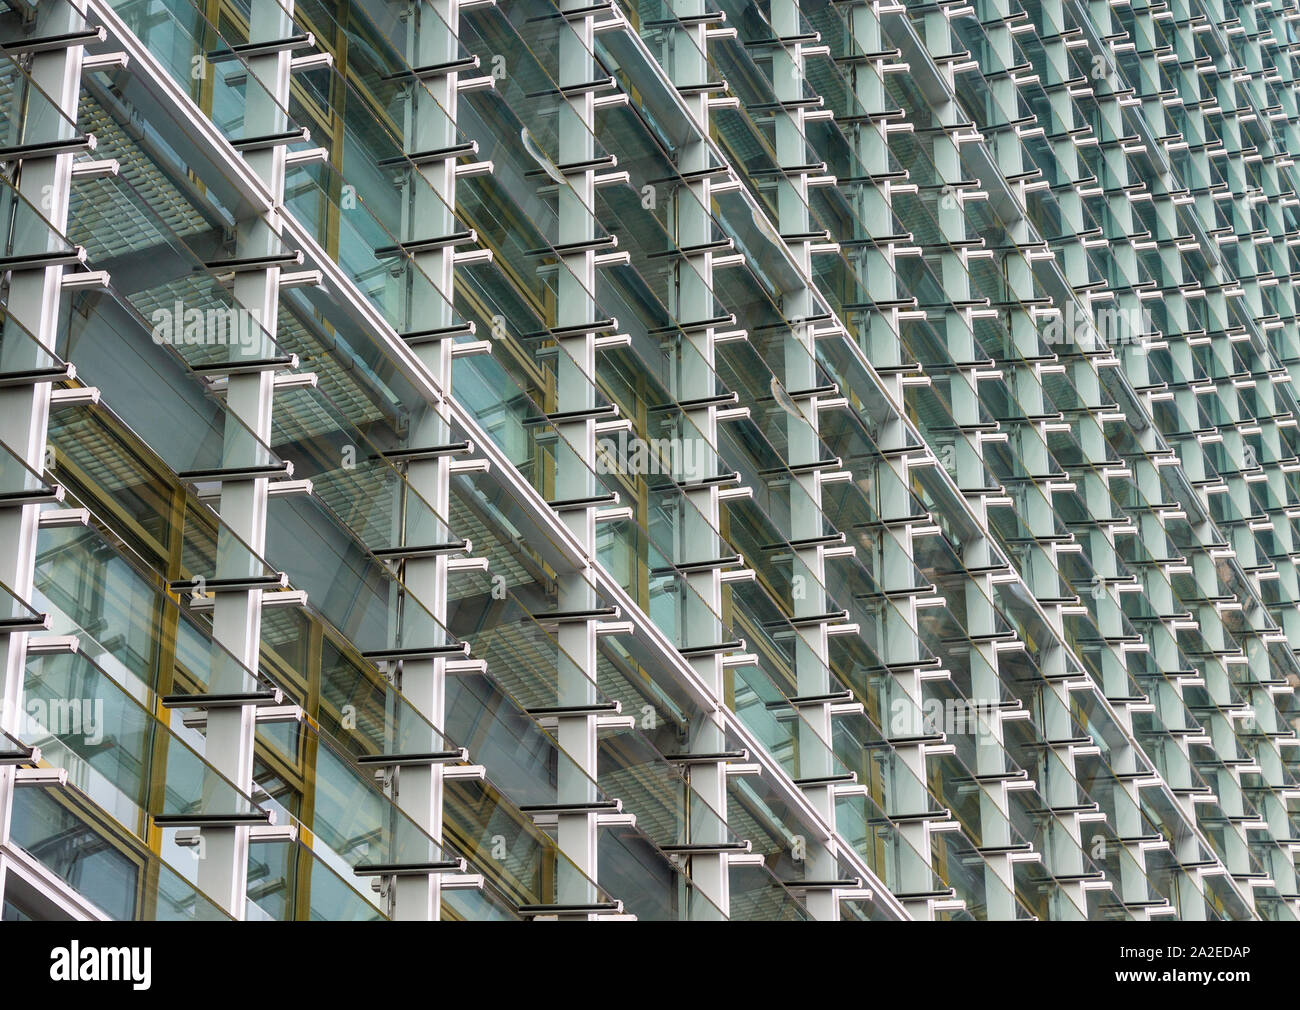 cork-county-hall-building-with-louvered-glass-facade-cladding-climate-control-2A2EDAP.jpg